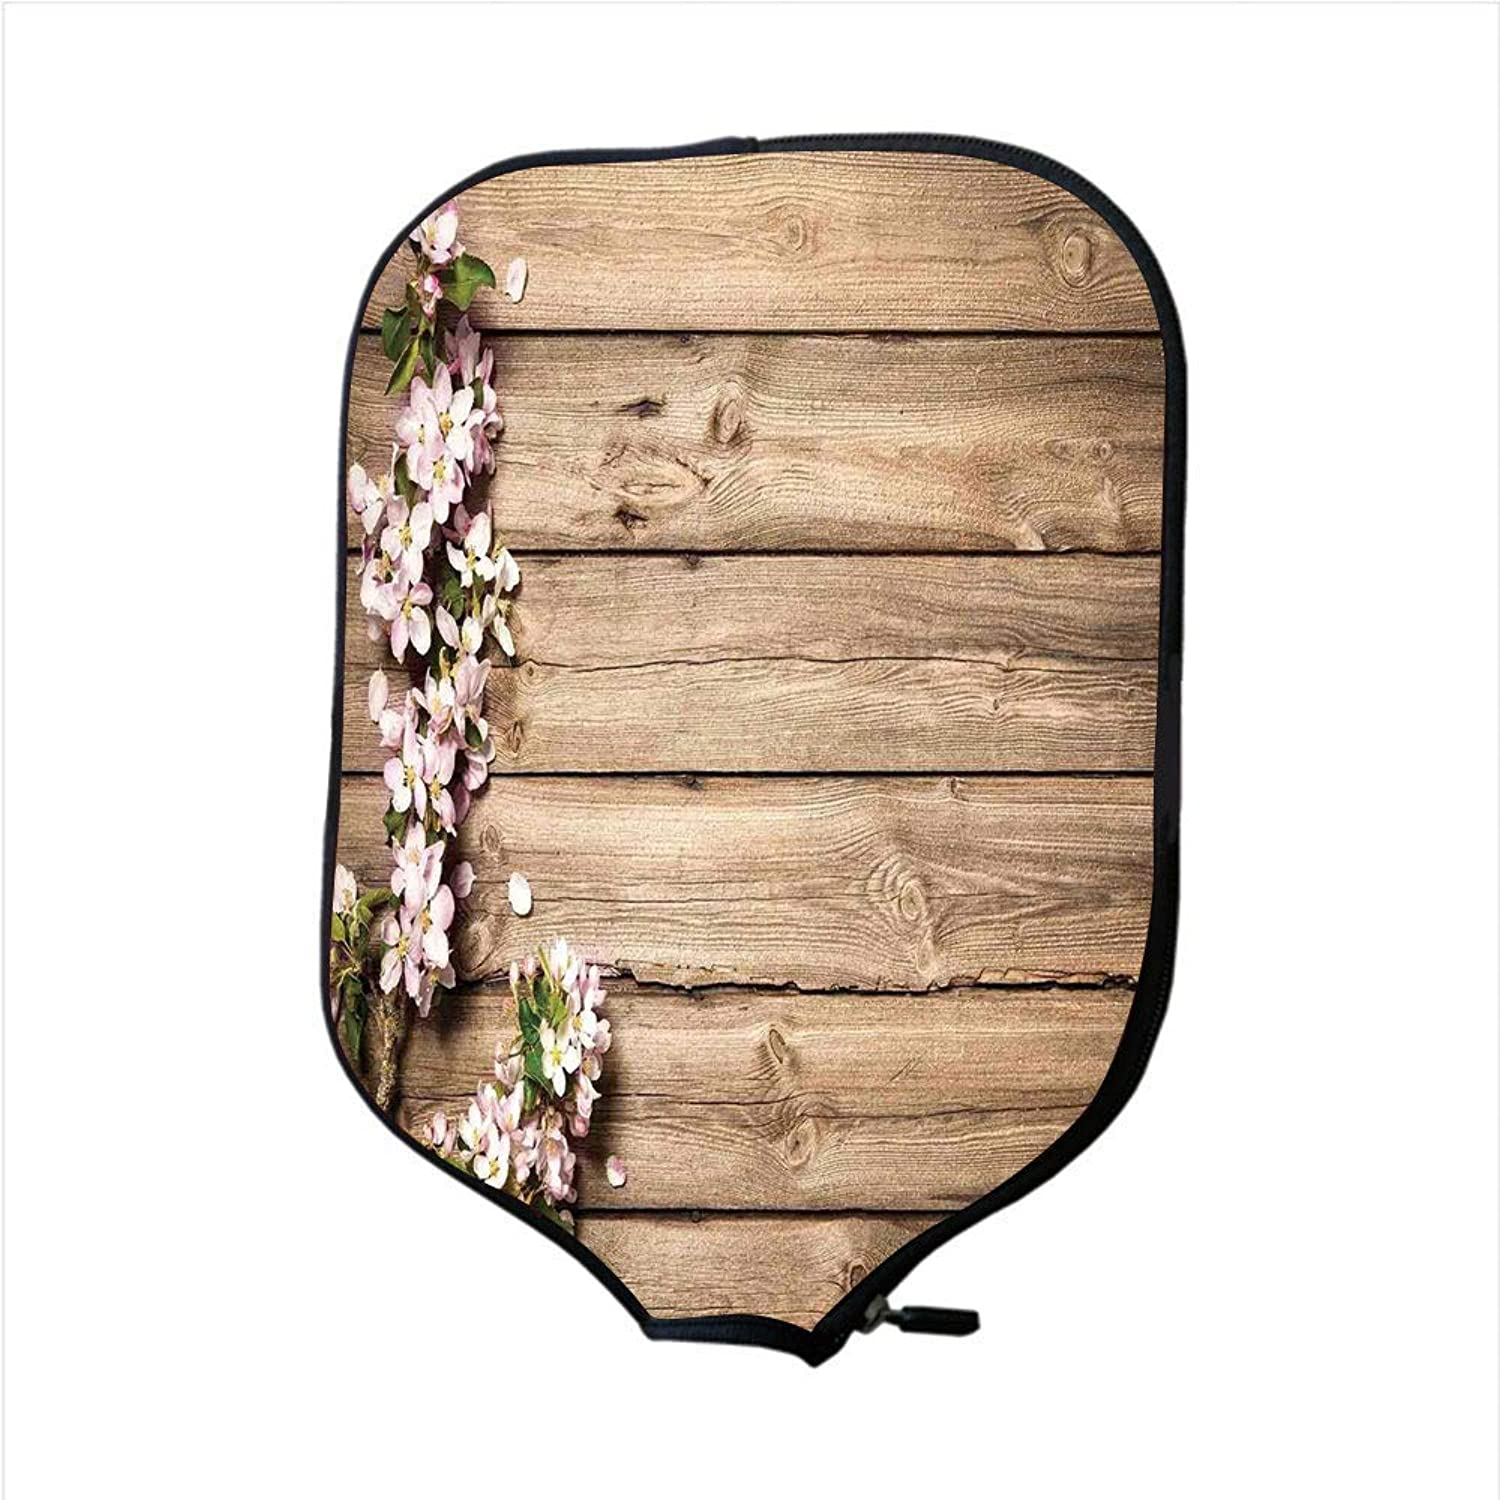 Fine Neoprene Pickleball Paddle Racket Cover Case,Rustic Home Decor,Sweet Spring Flowering Branch on Weathered Wooden Blooming Orchard,Pink Brown Green,Fit for Most Rackets